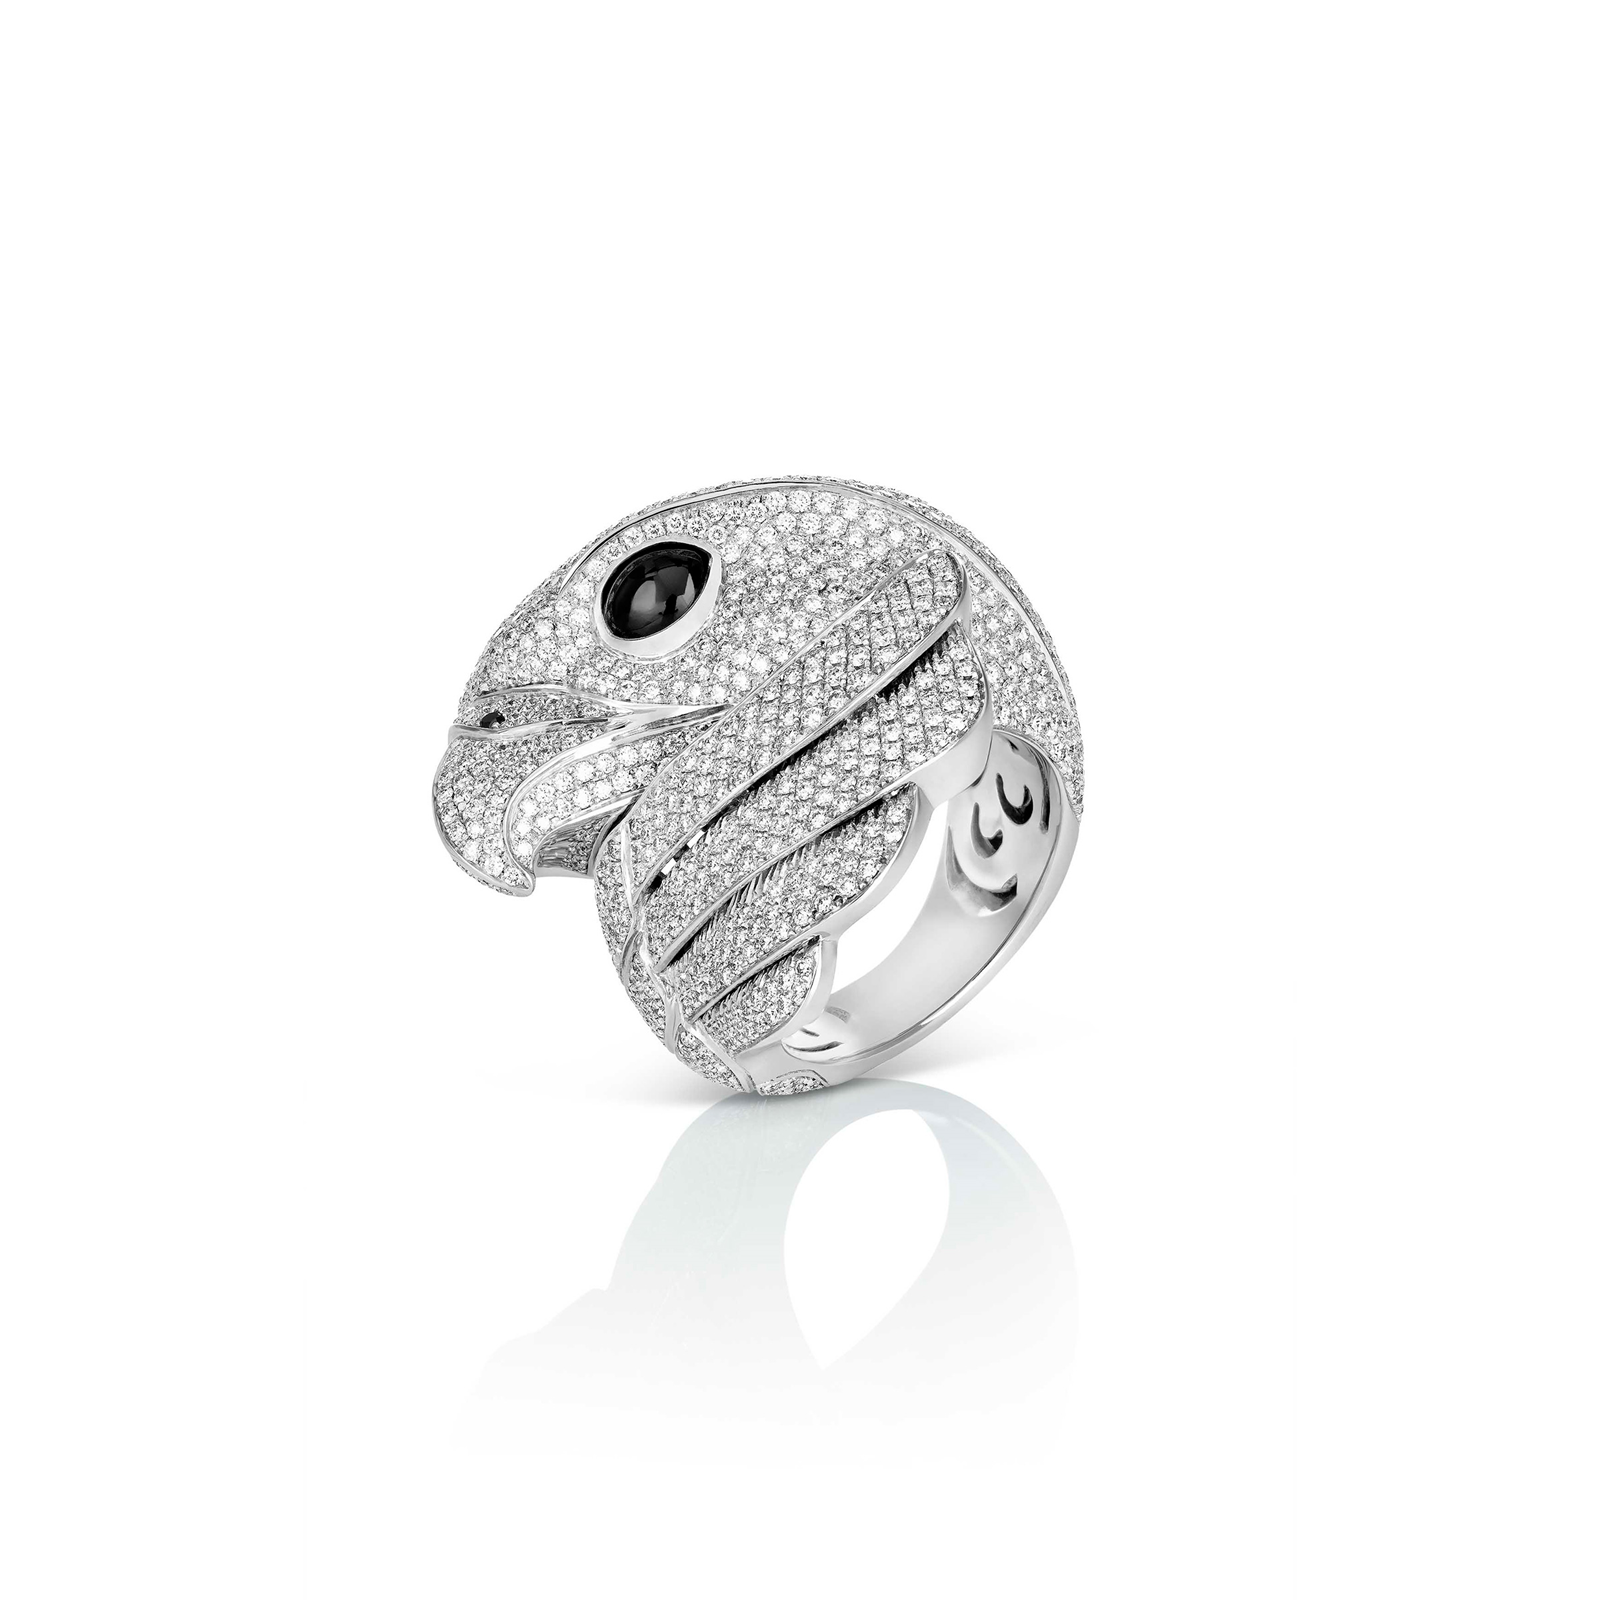 Roberto Coin Animalier Falcon Diamond Ring - Ring Size N